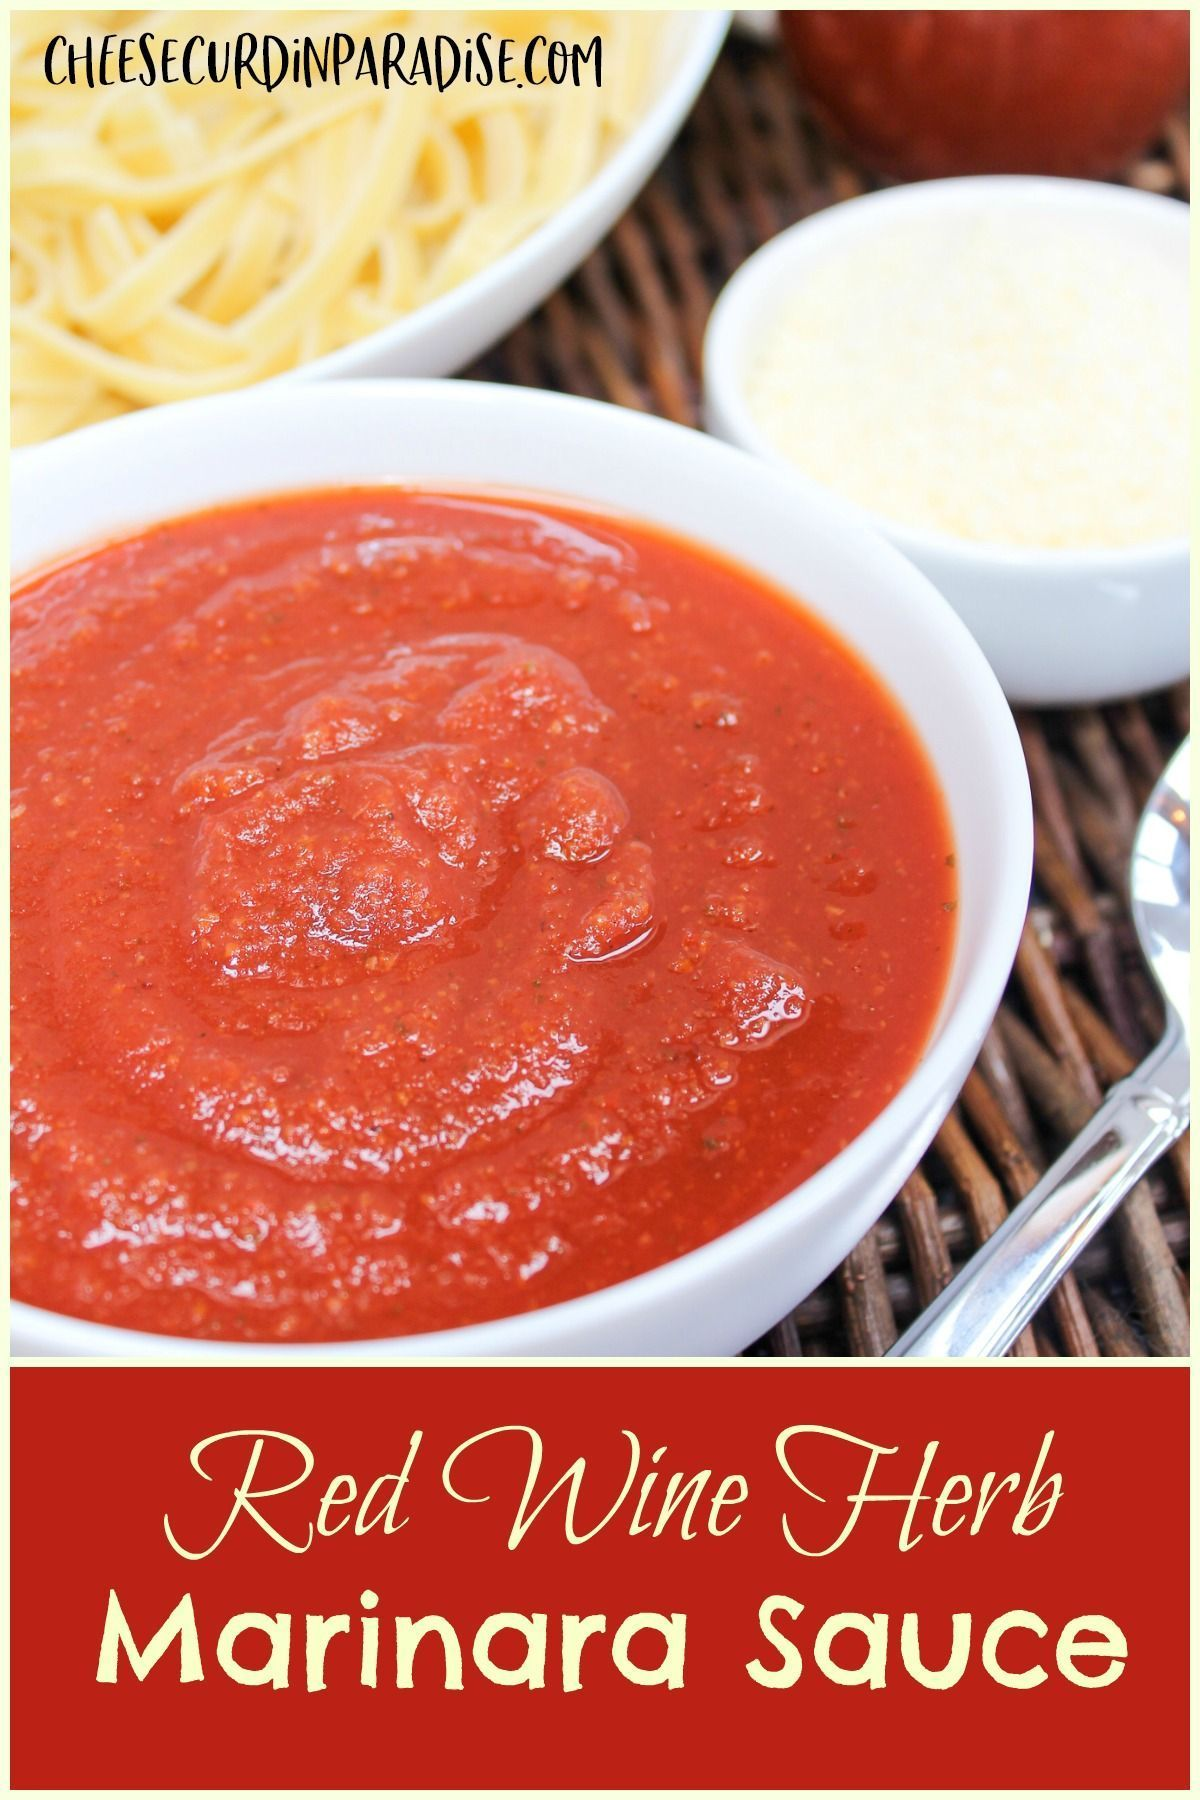 Red Wine Herb Marinara Sauce Recipe In 2020 Recipes Easy Dinner Recipes Canning Whole Tomatoes